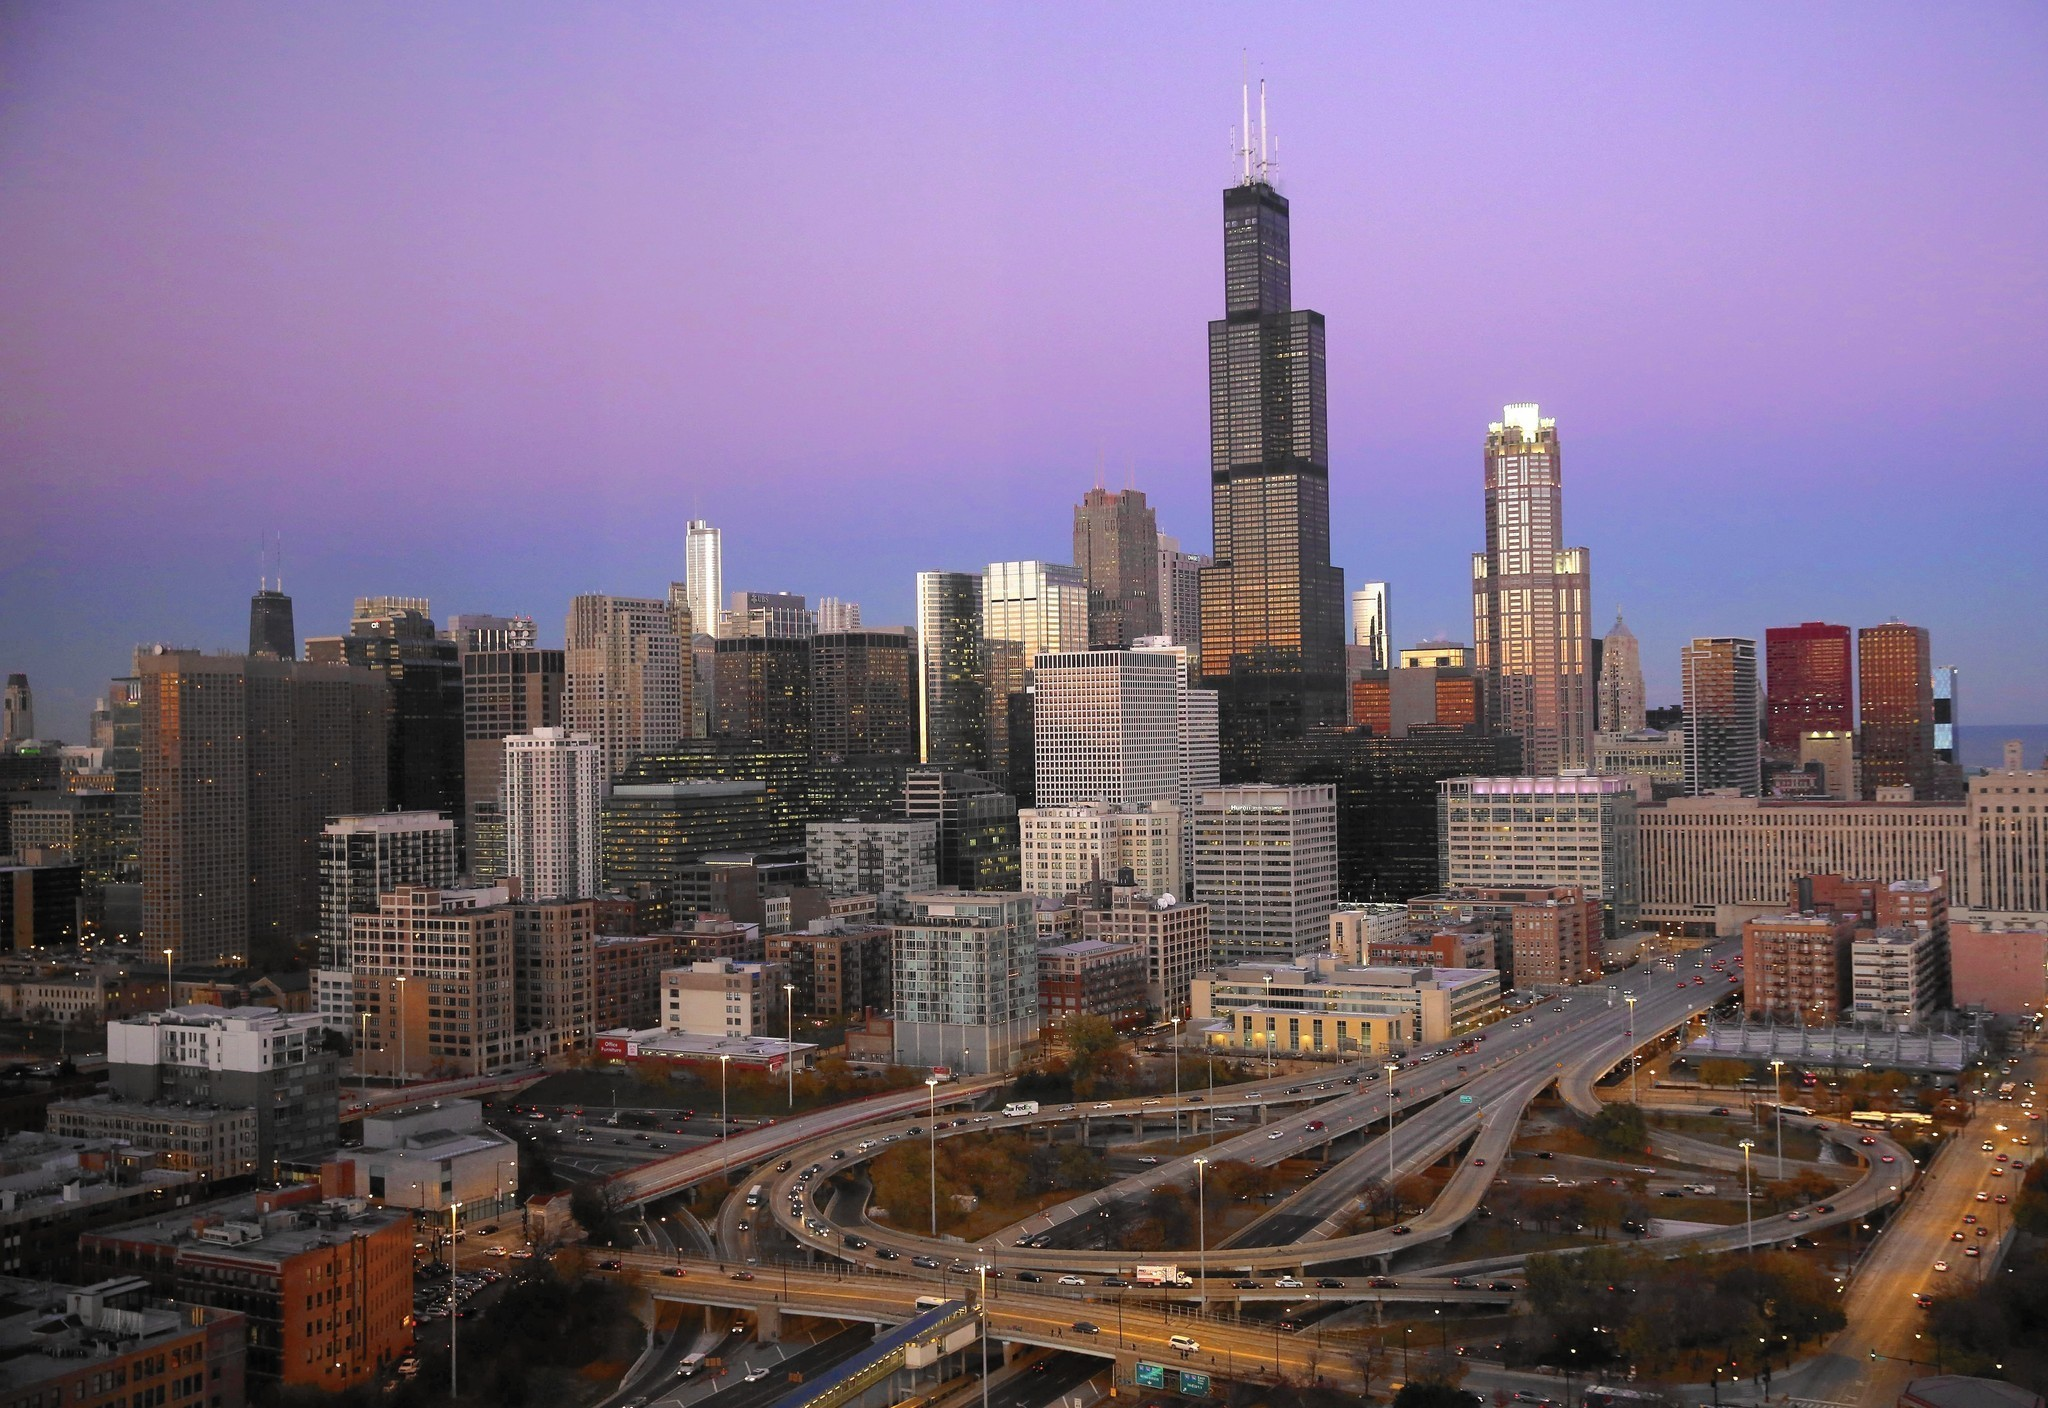 willis tower owners in talks with blackstone group source says